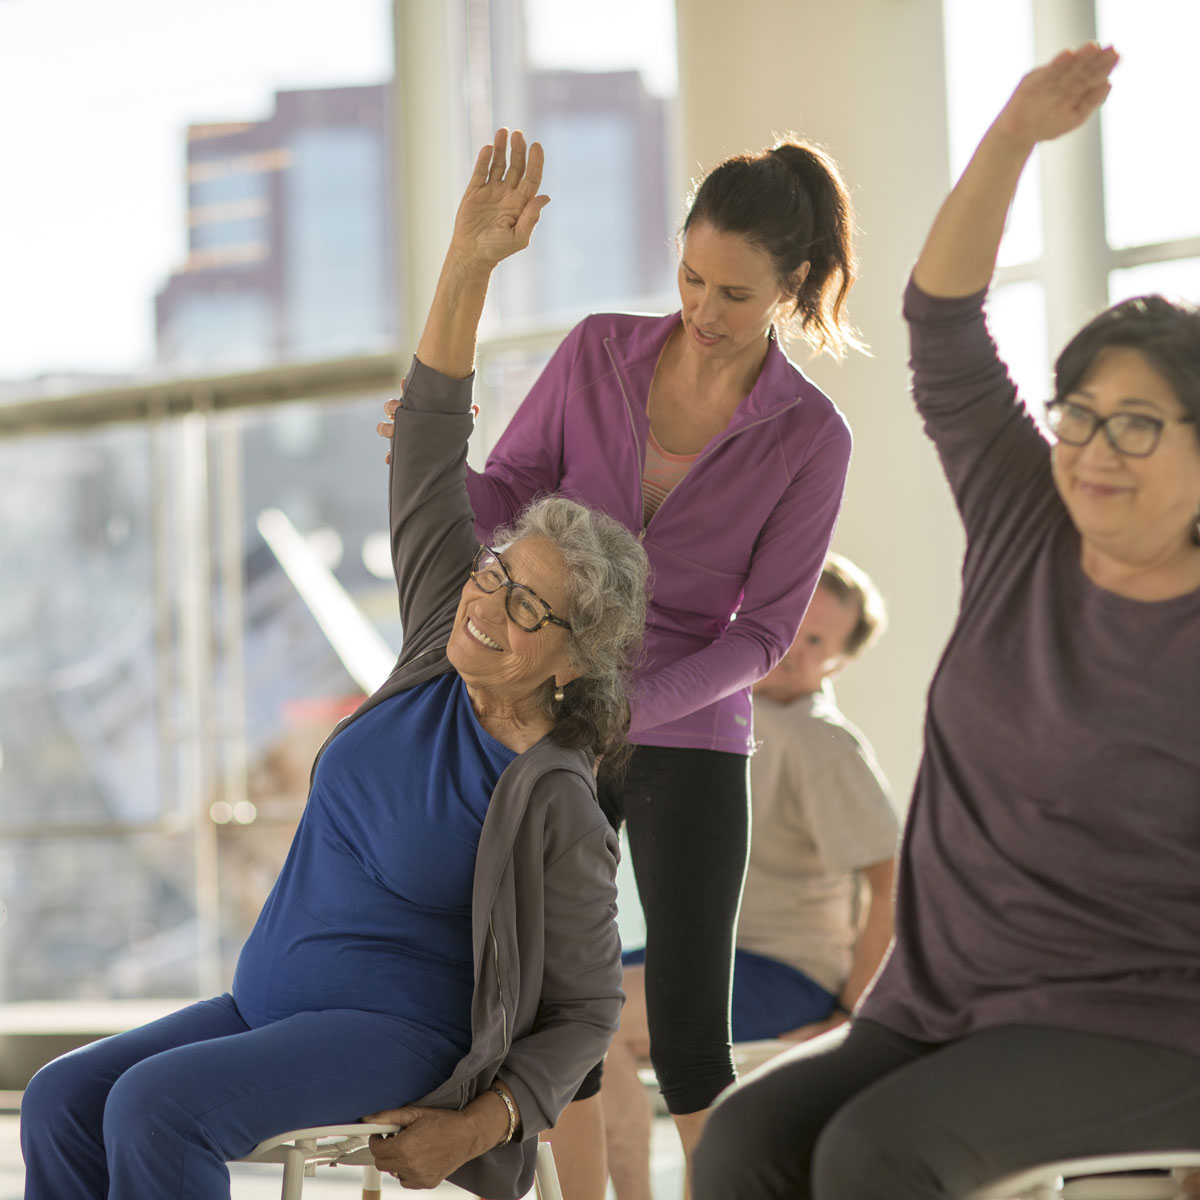 A group of people in exercise clothes sitting in chairs, stretching their right arm over their heads while a trainer supports one woman's stretch.